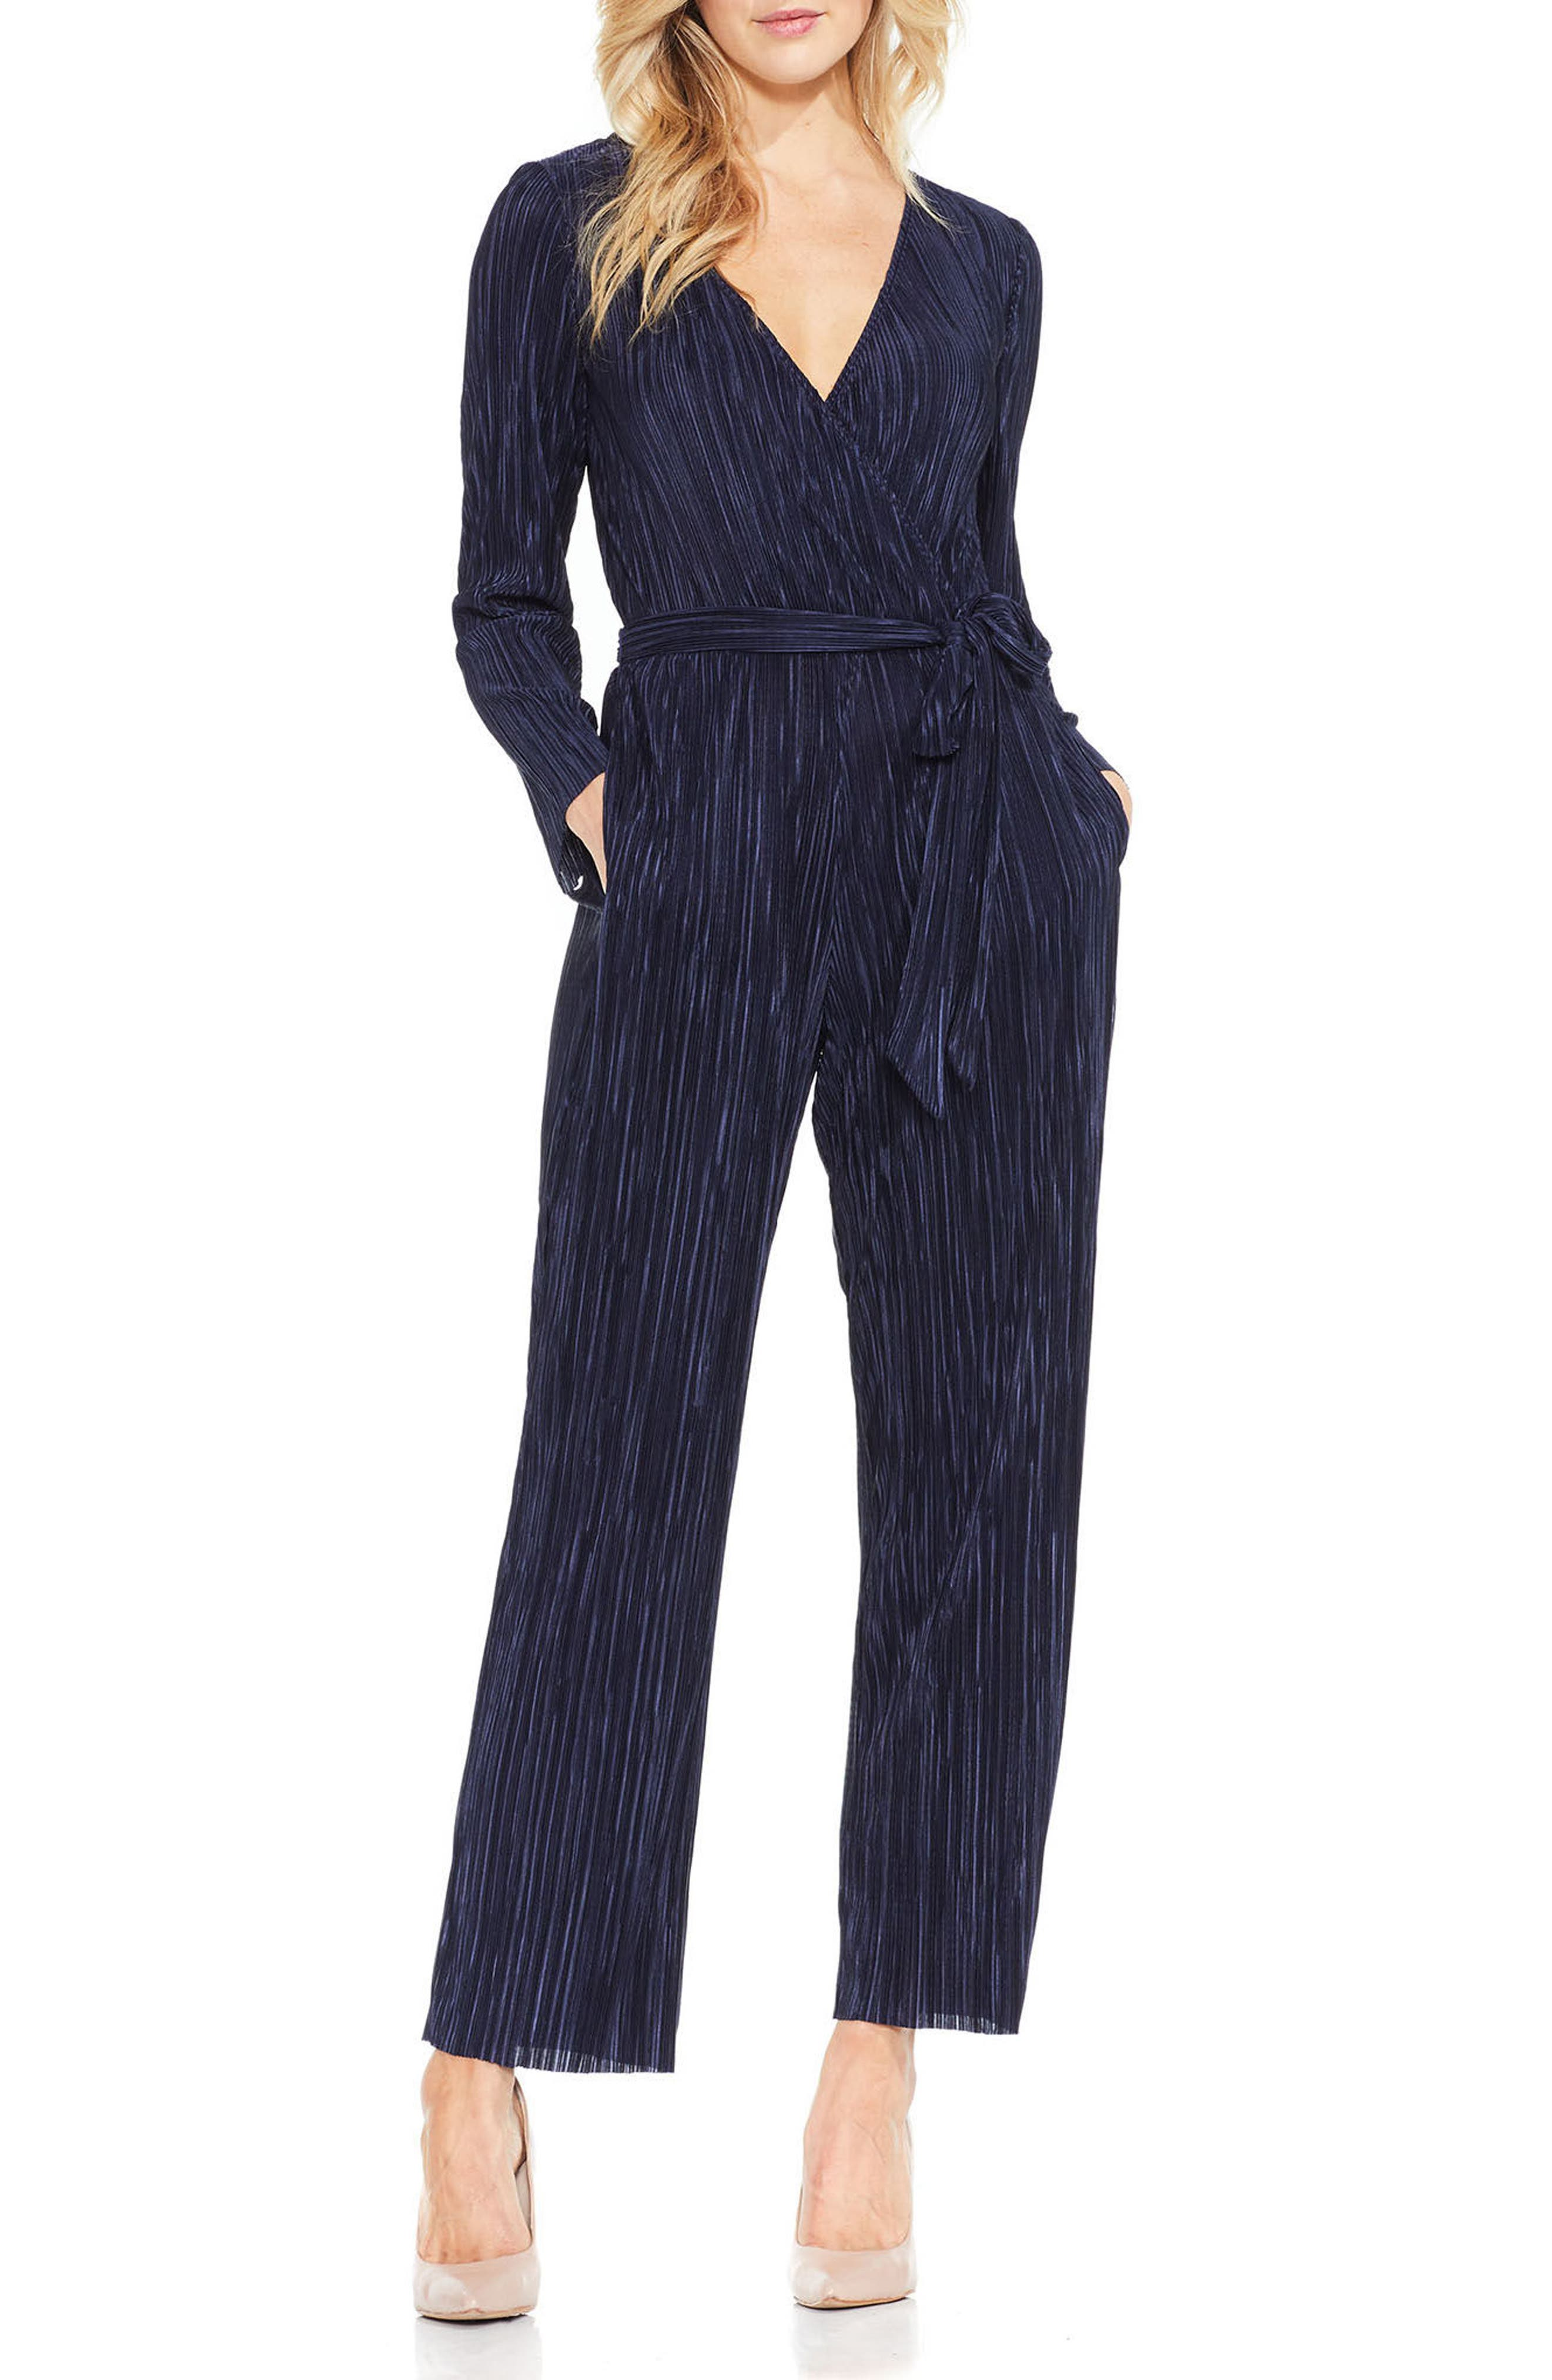 Vince Camuto Pleated Knit Jumpsuit